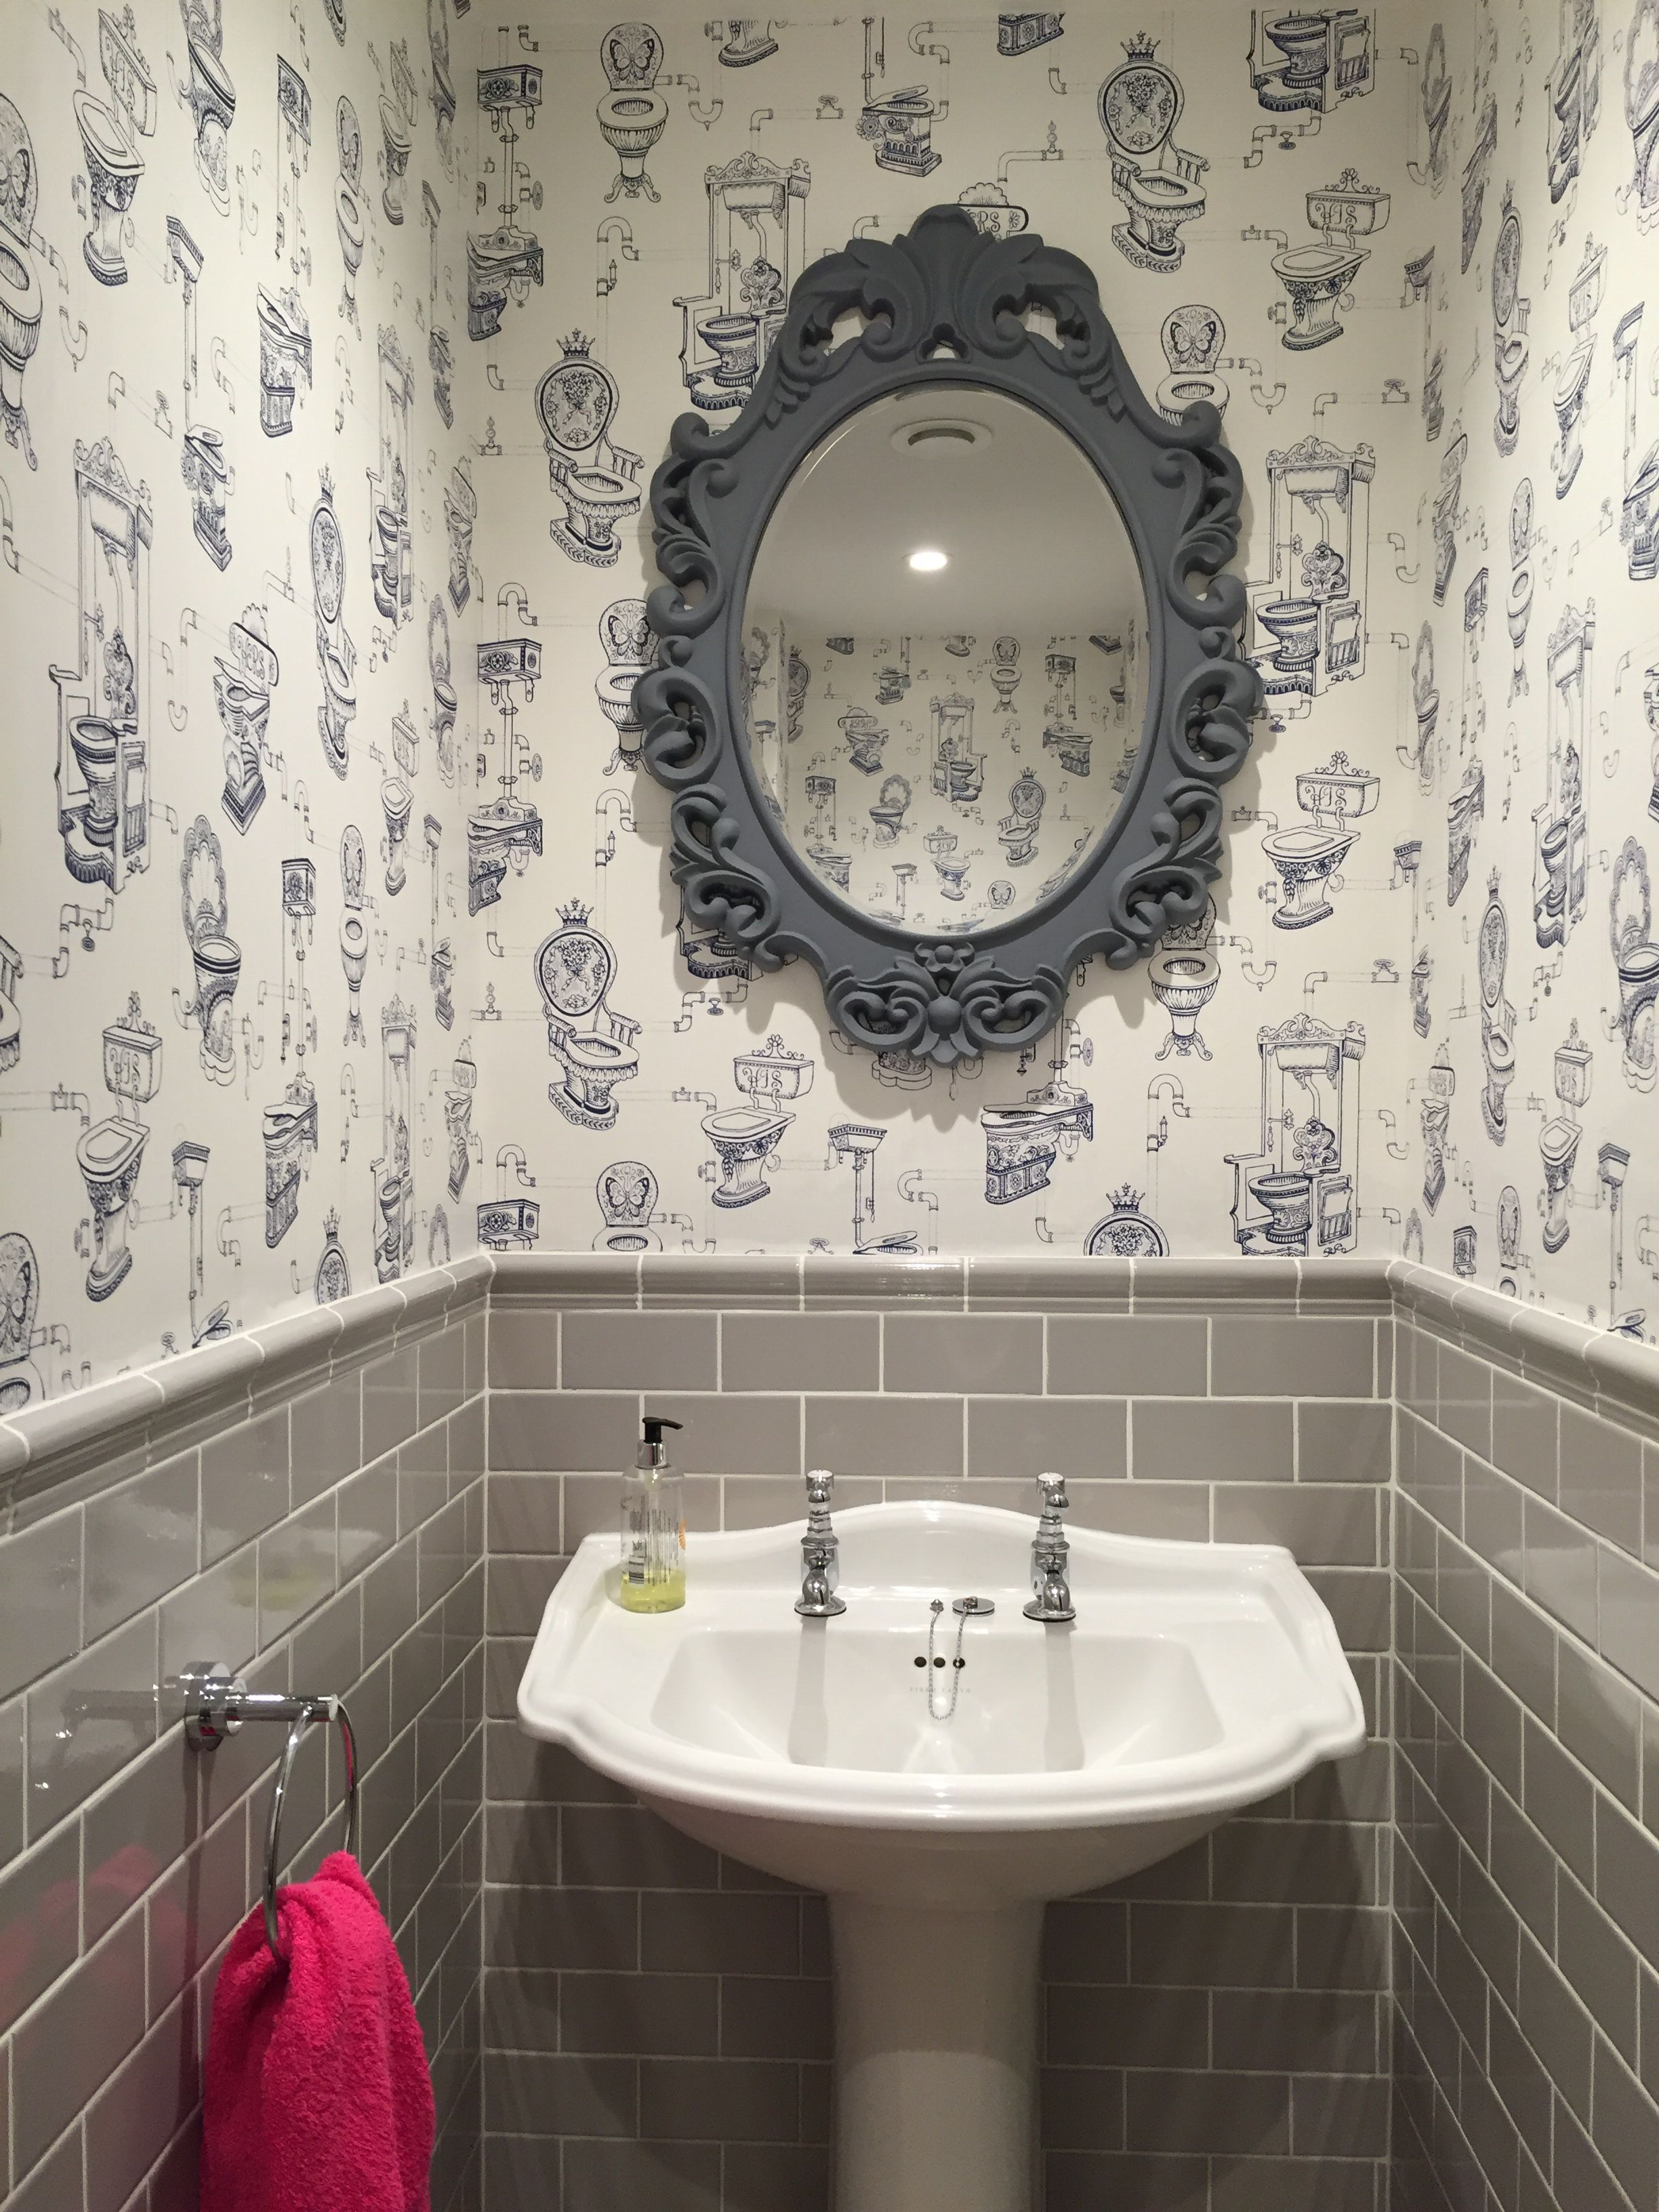 Our Downstairs Toilet, Fun Wallpaper From Graham & Brown